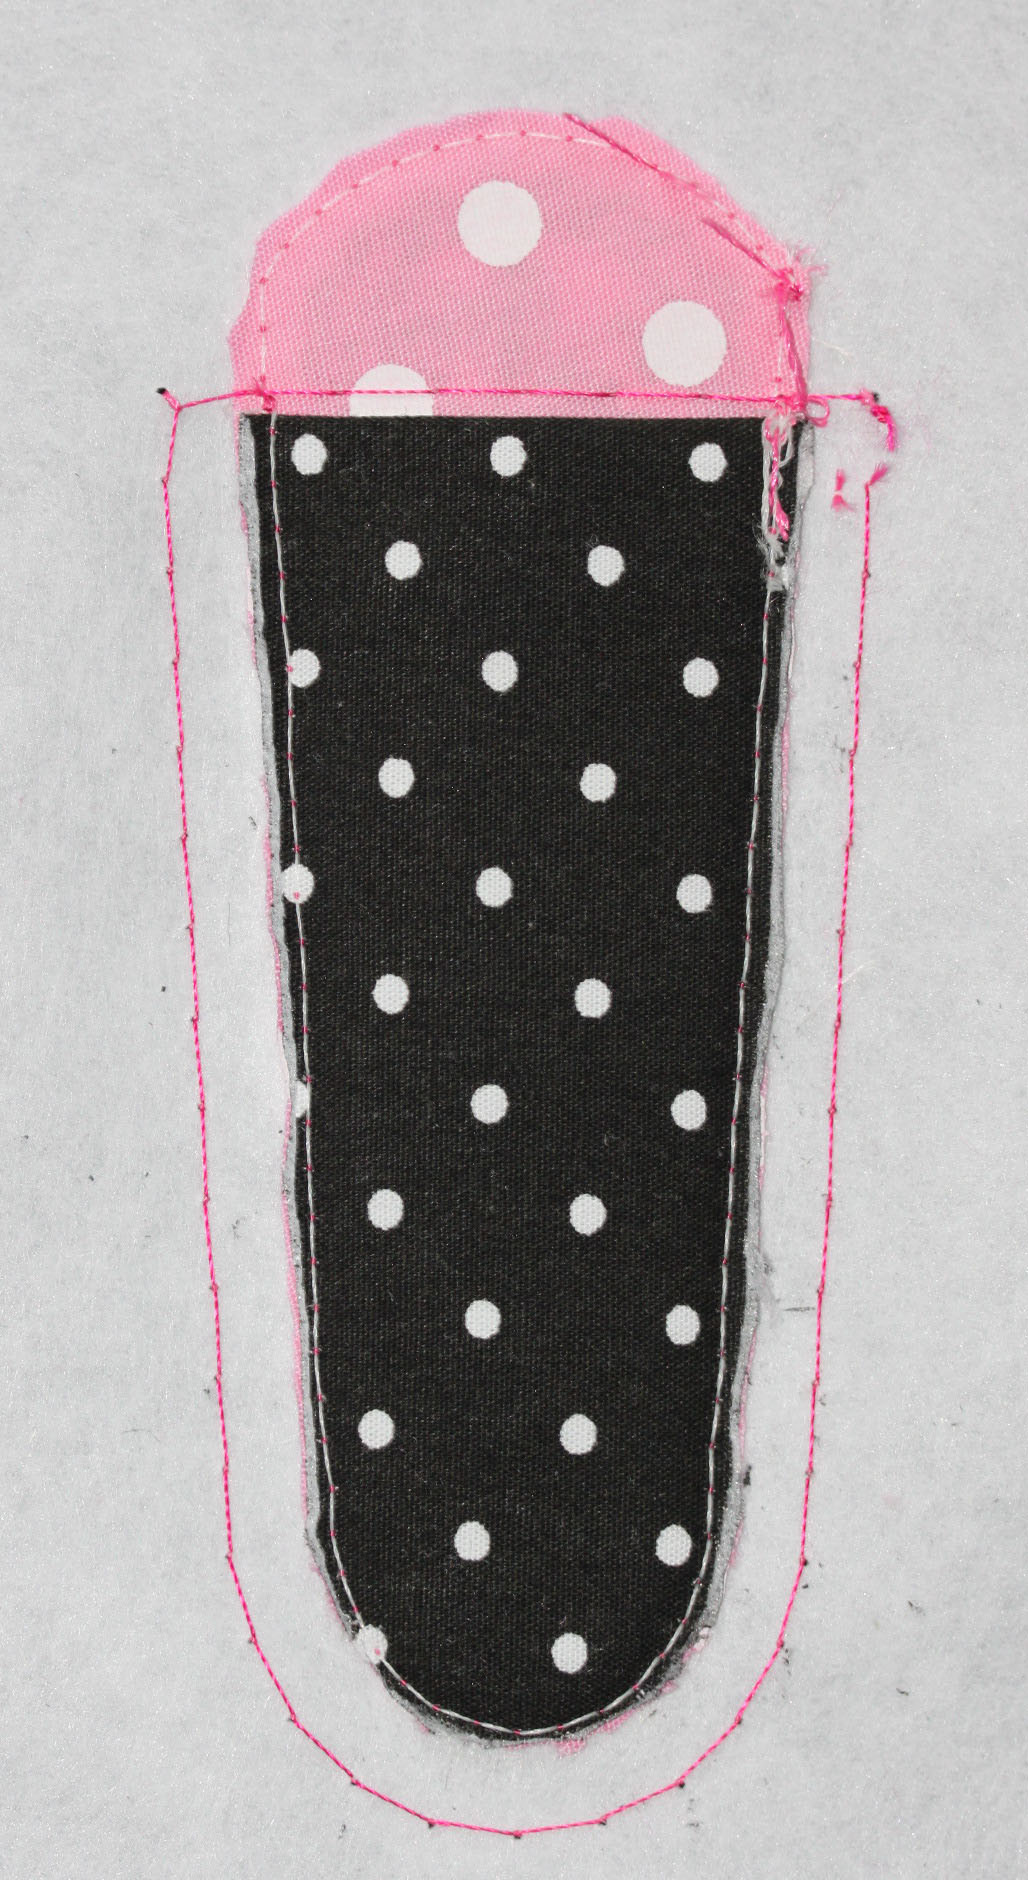 Polka Dot Fabric Cut Along Outline Stitch